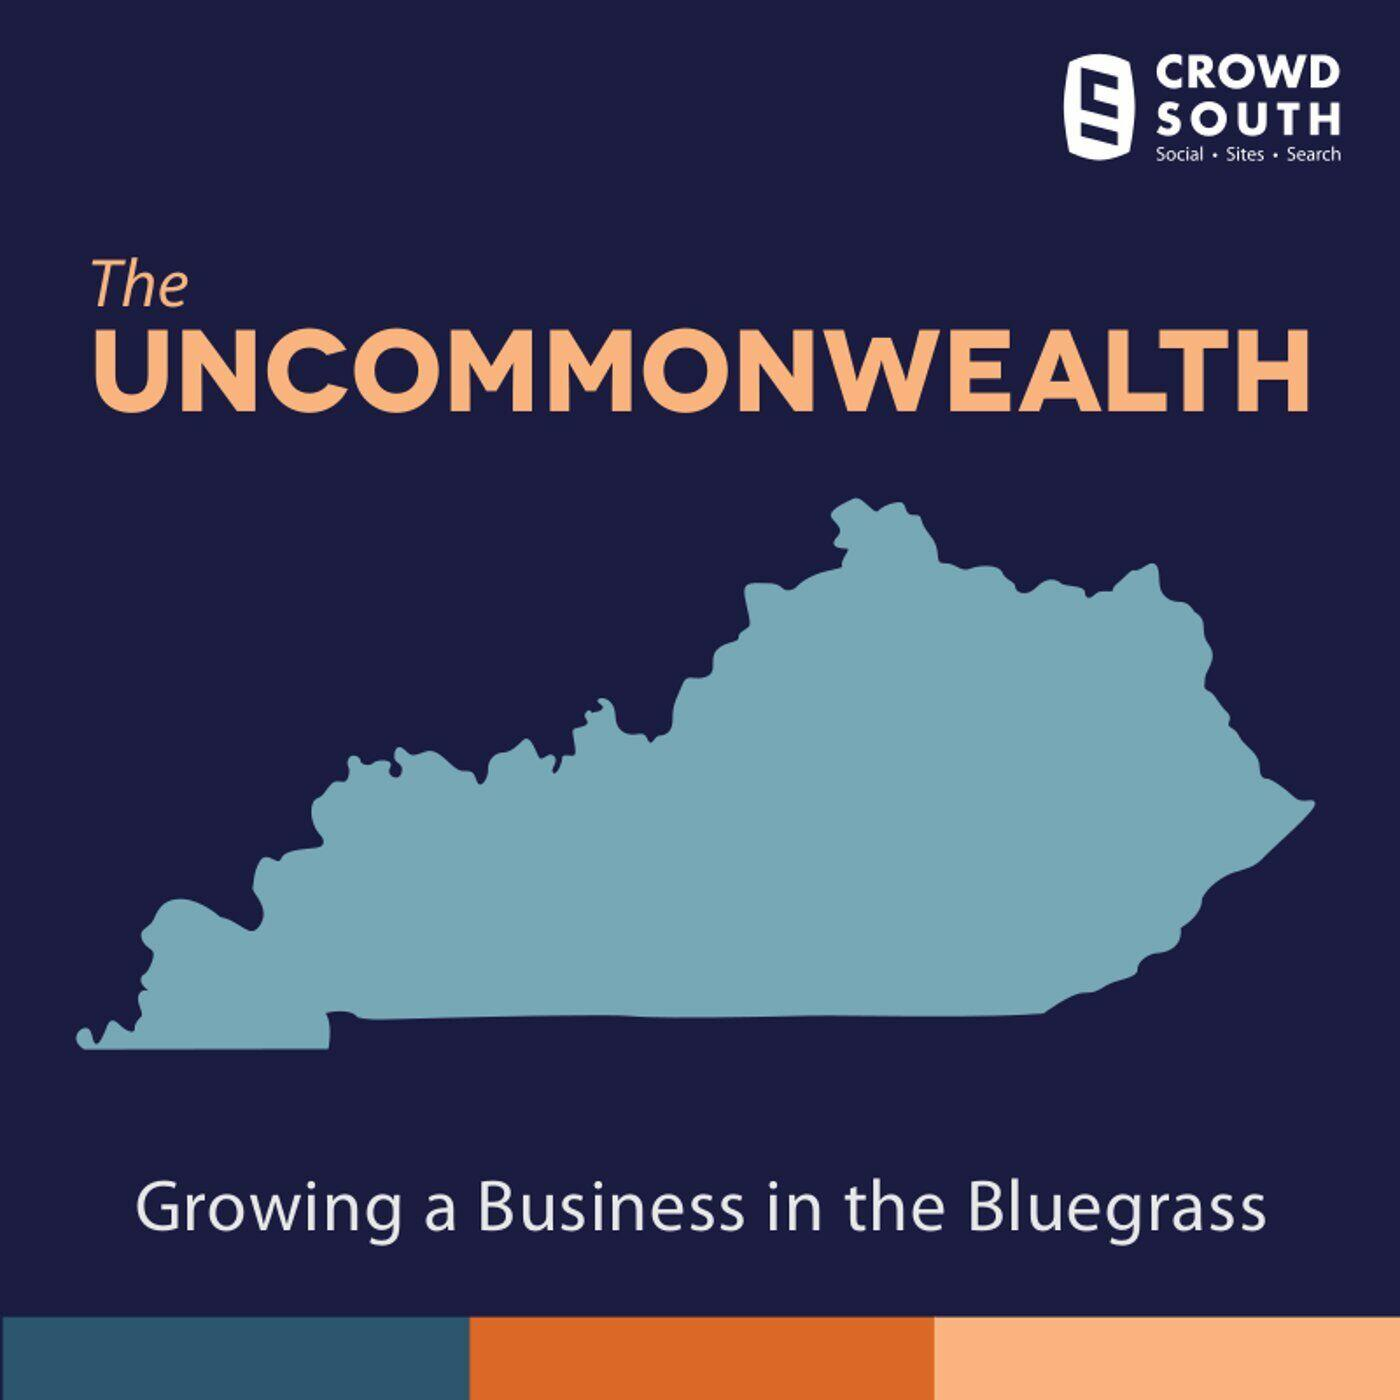 The Uncommonwealth of Kentucky: Growing A Business in the Bluegrass